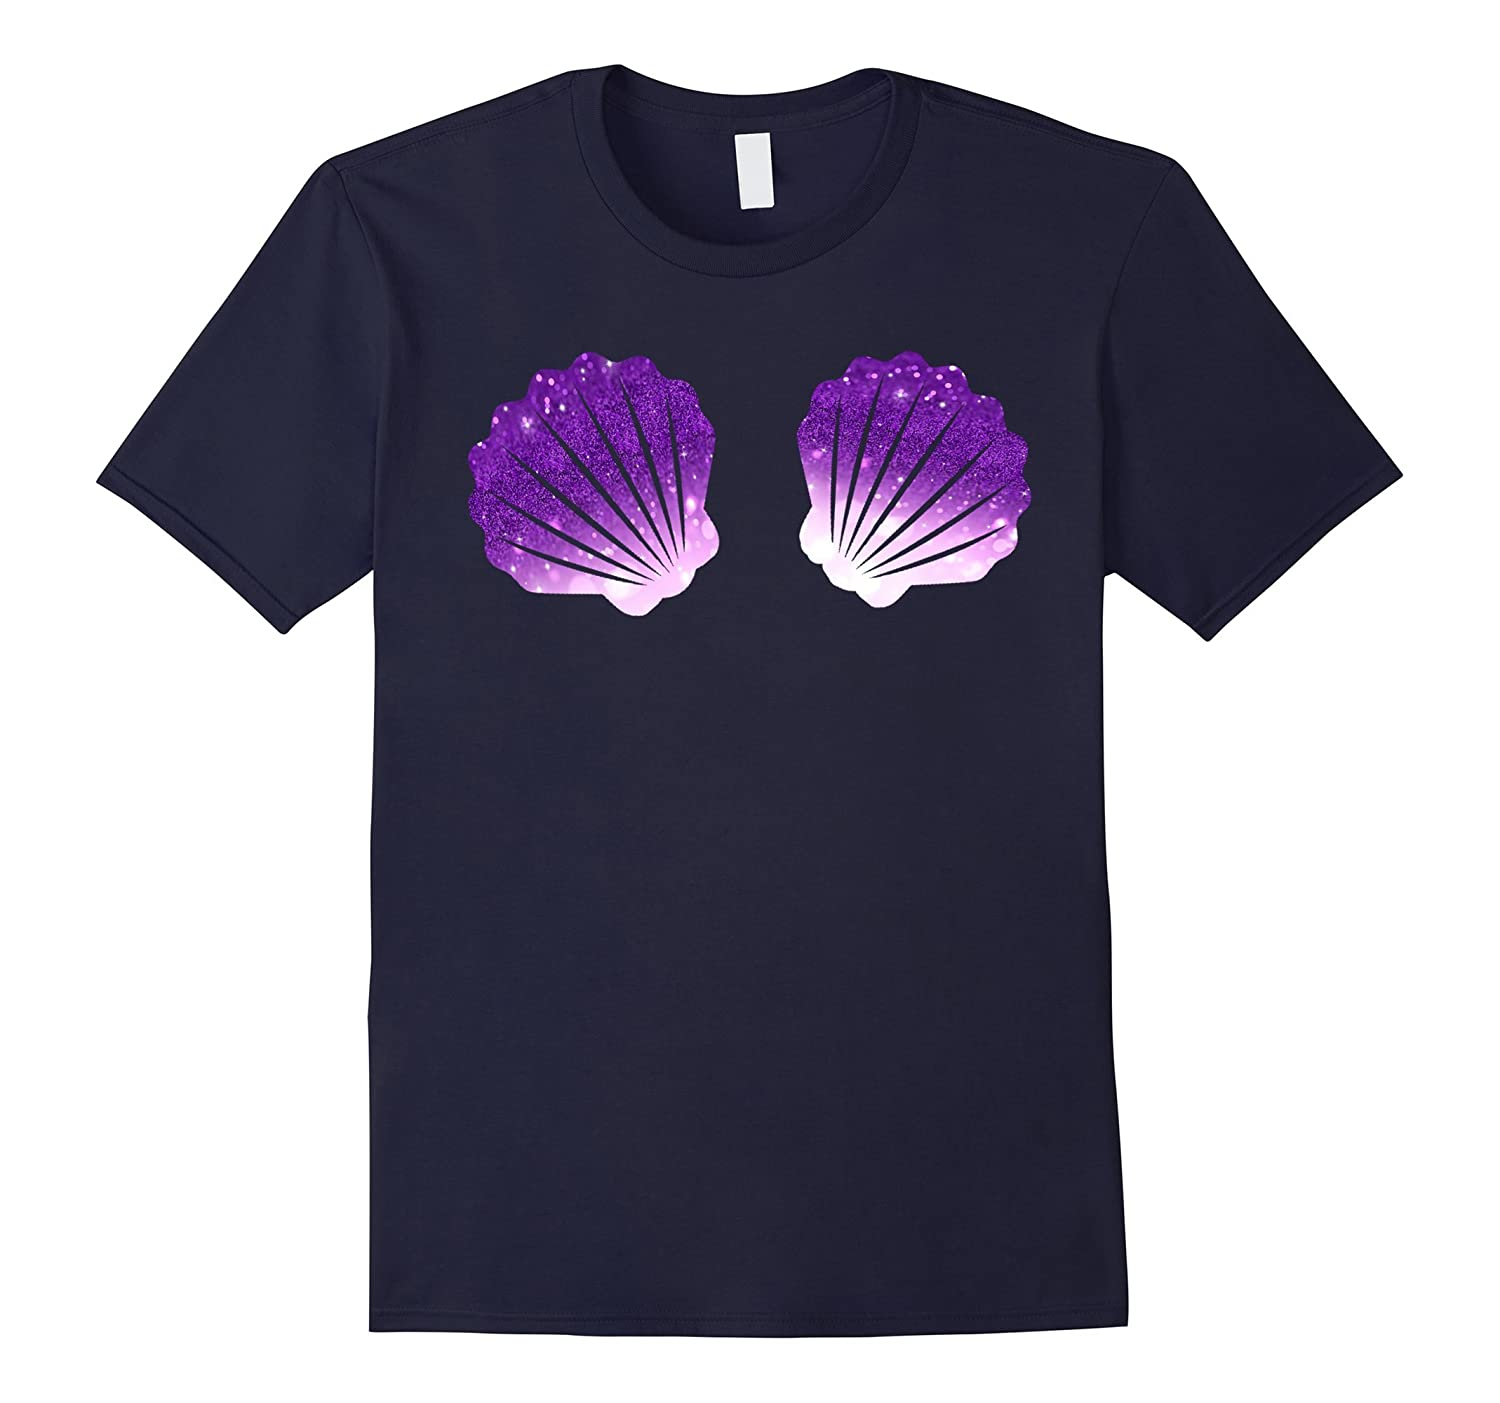 Mermaid Sea Shell Bra T Shirt Galaxy Purple Seashell Shirts-FL